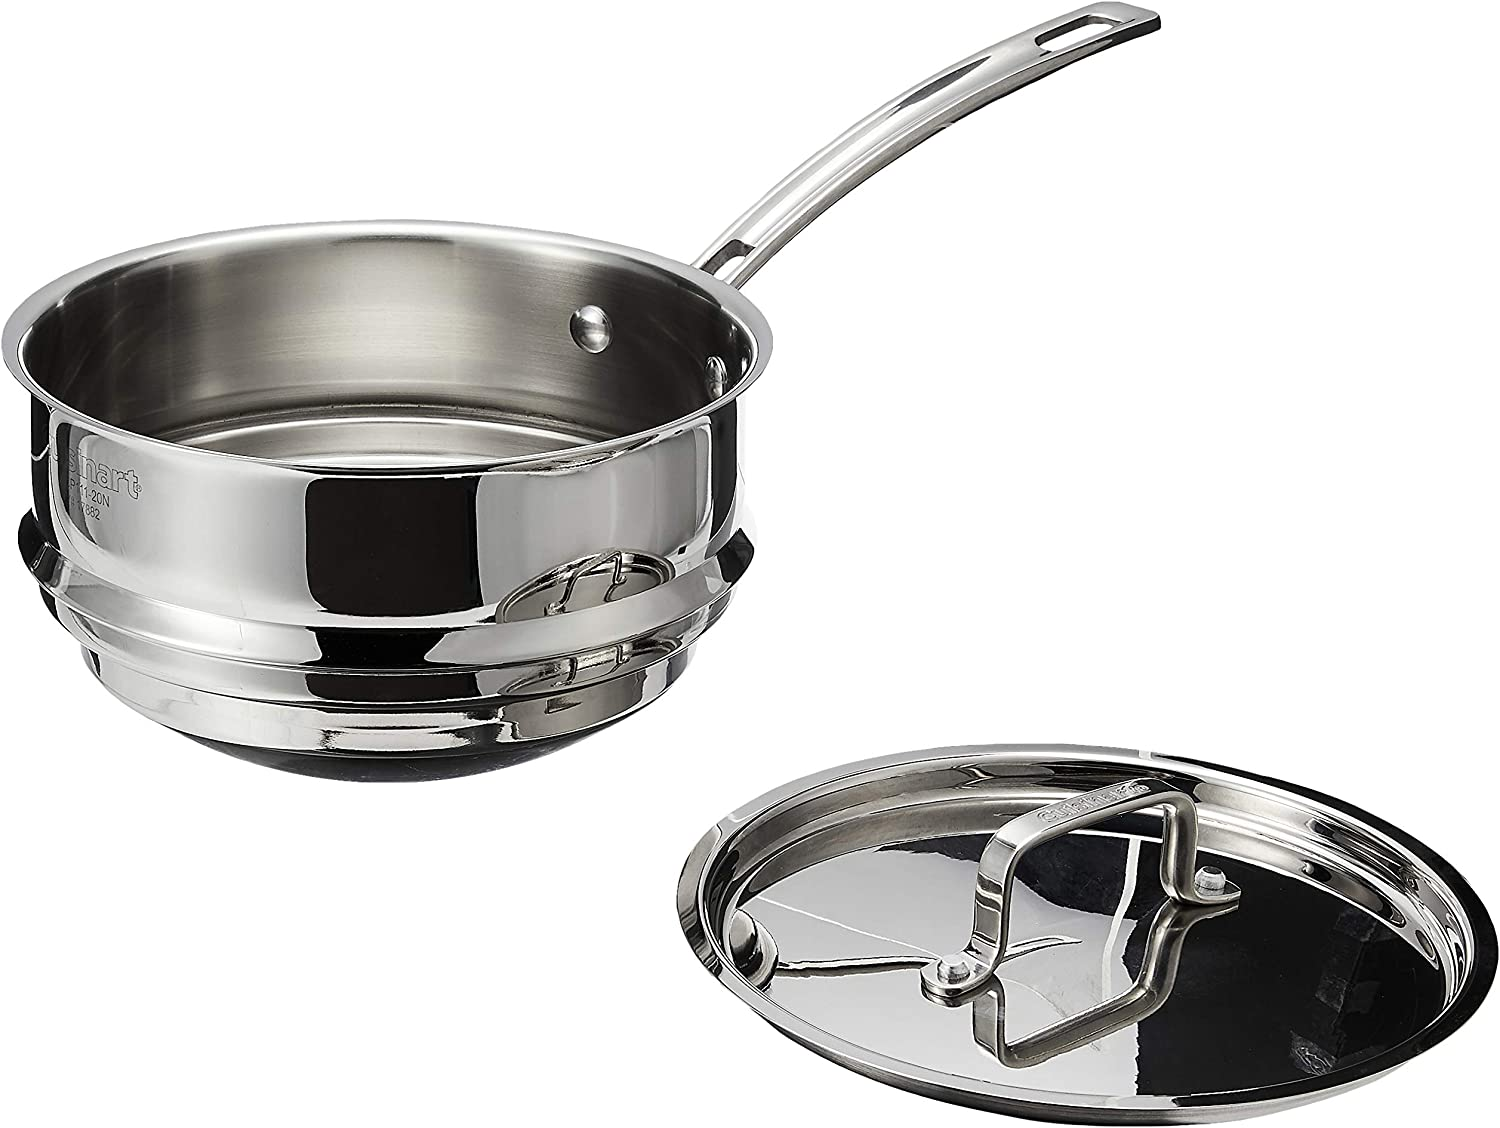 Cuisinart MultiClad Pro Stainless Universal Double Boiler